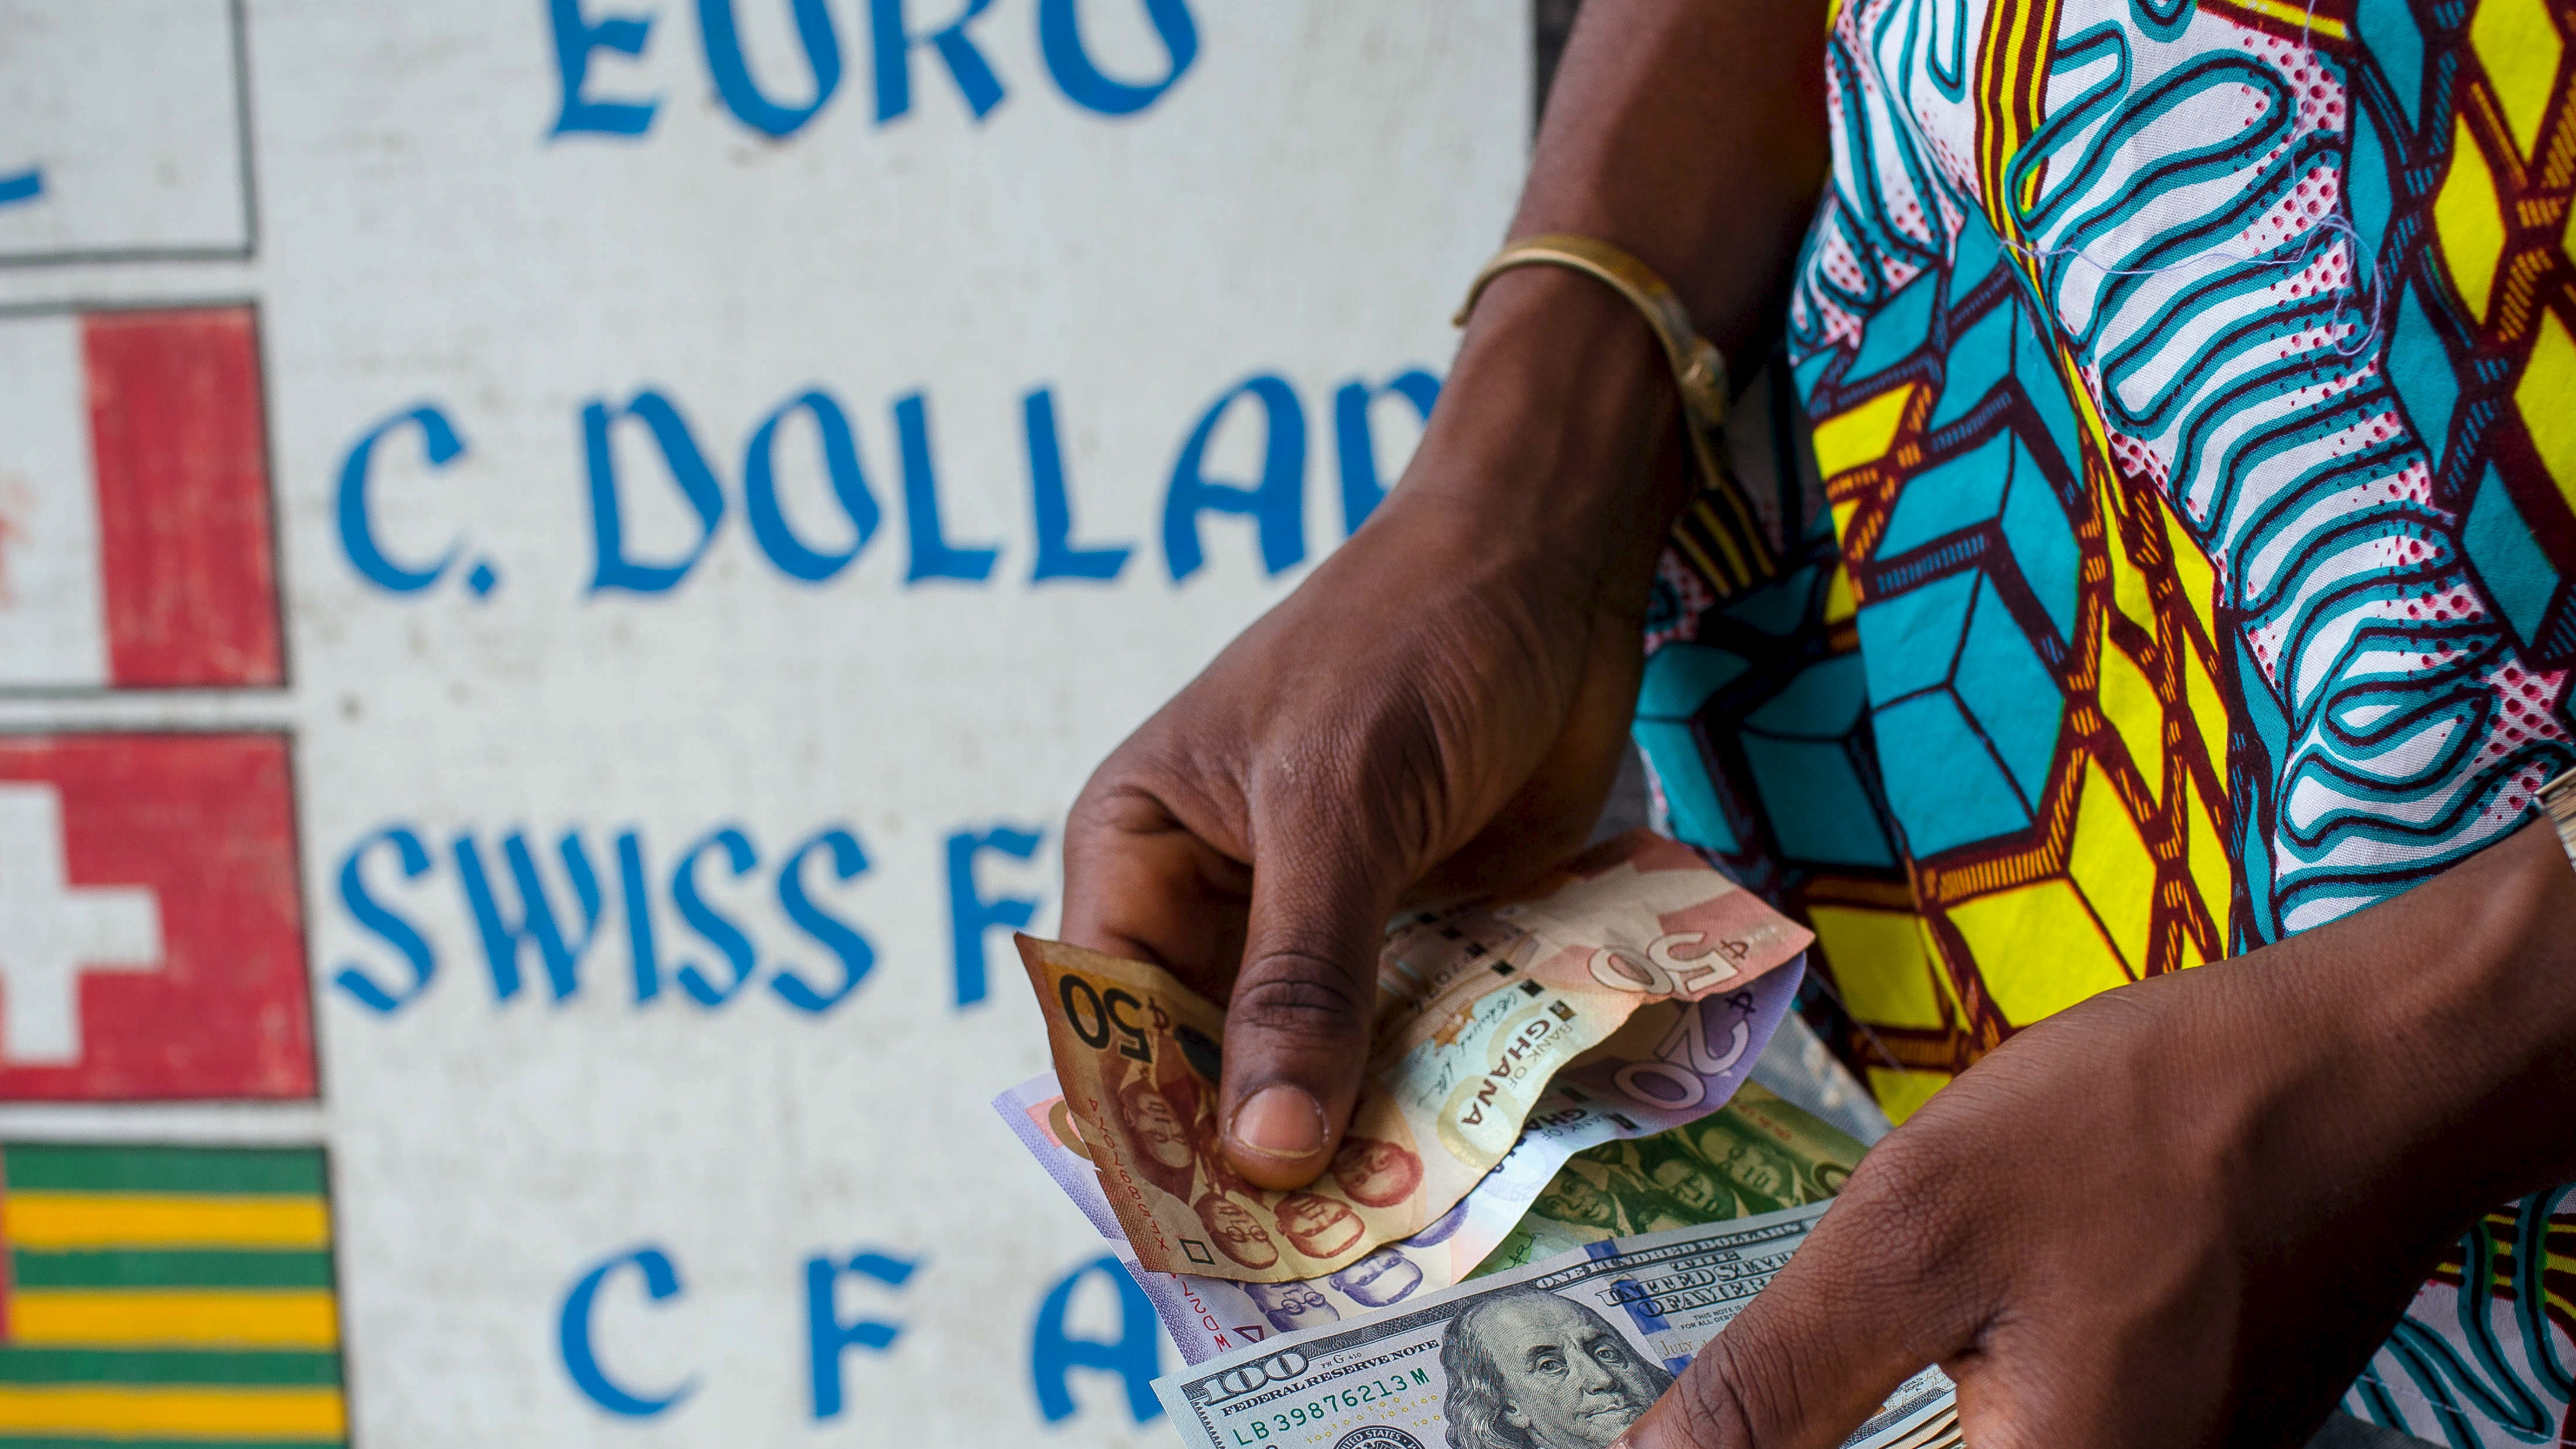 A man trades U.S. dollars for Ghanaian cedis at a currency exchange office in Accra, Ghana